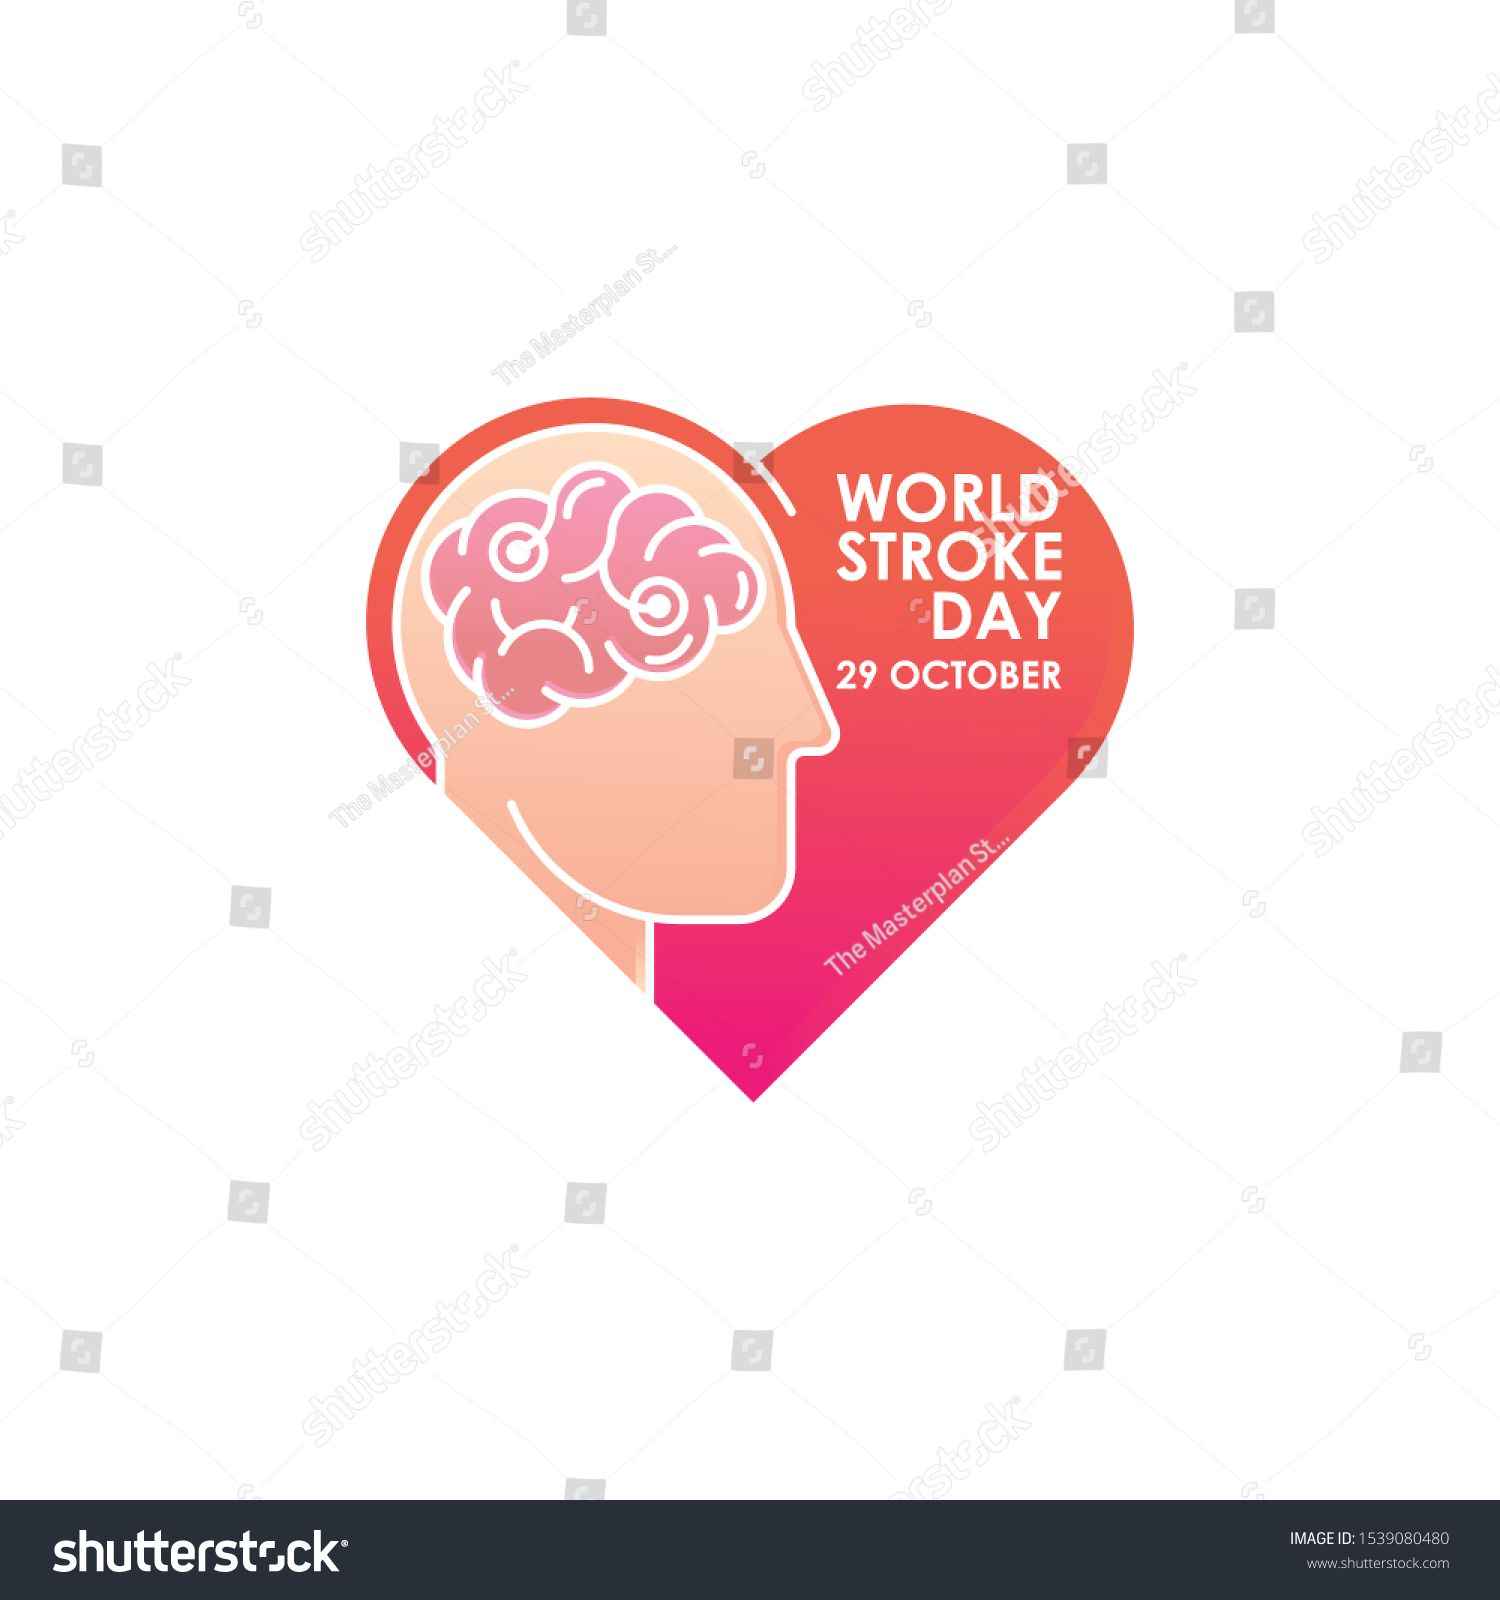 World Stroke Day Vector Logo Poster Illustration Of World Stroke Day On October 29th Health Care Awareness Campaign Ad In 2020 World Stroke Day Vector Logo Vector